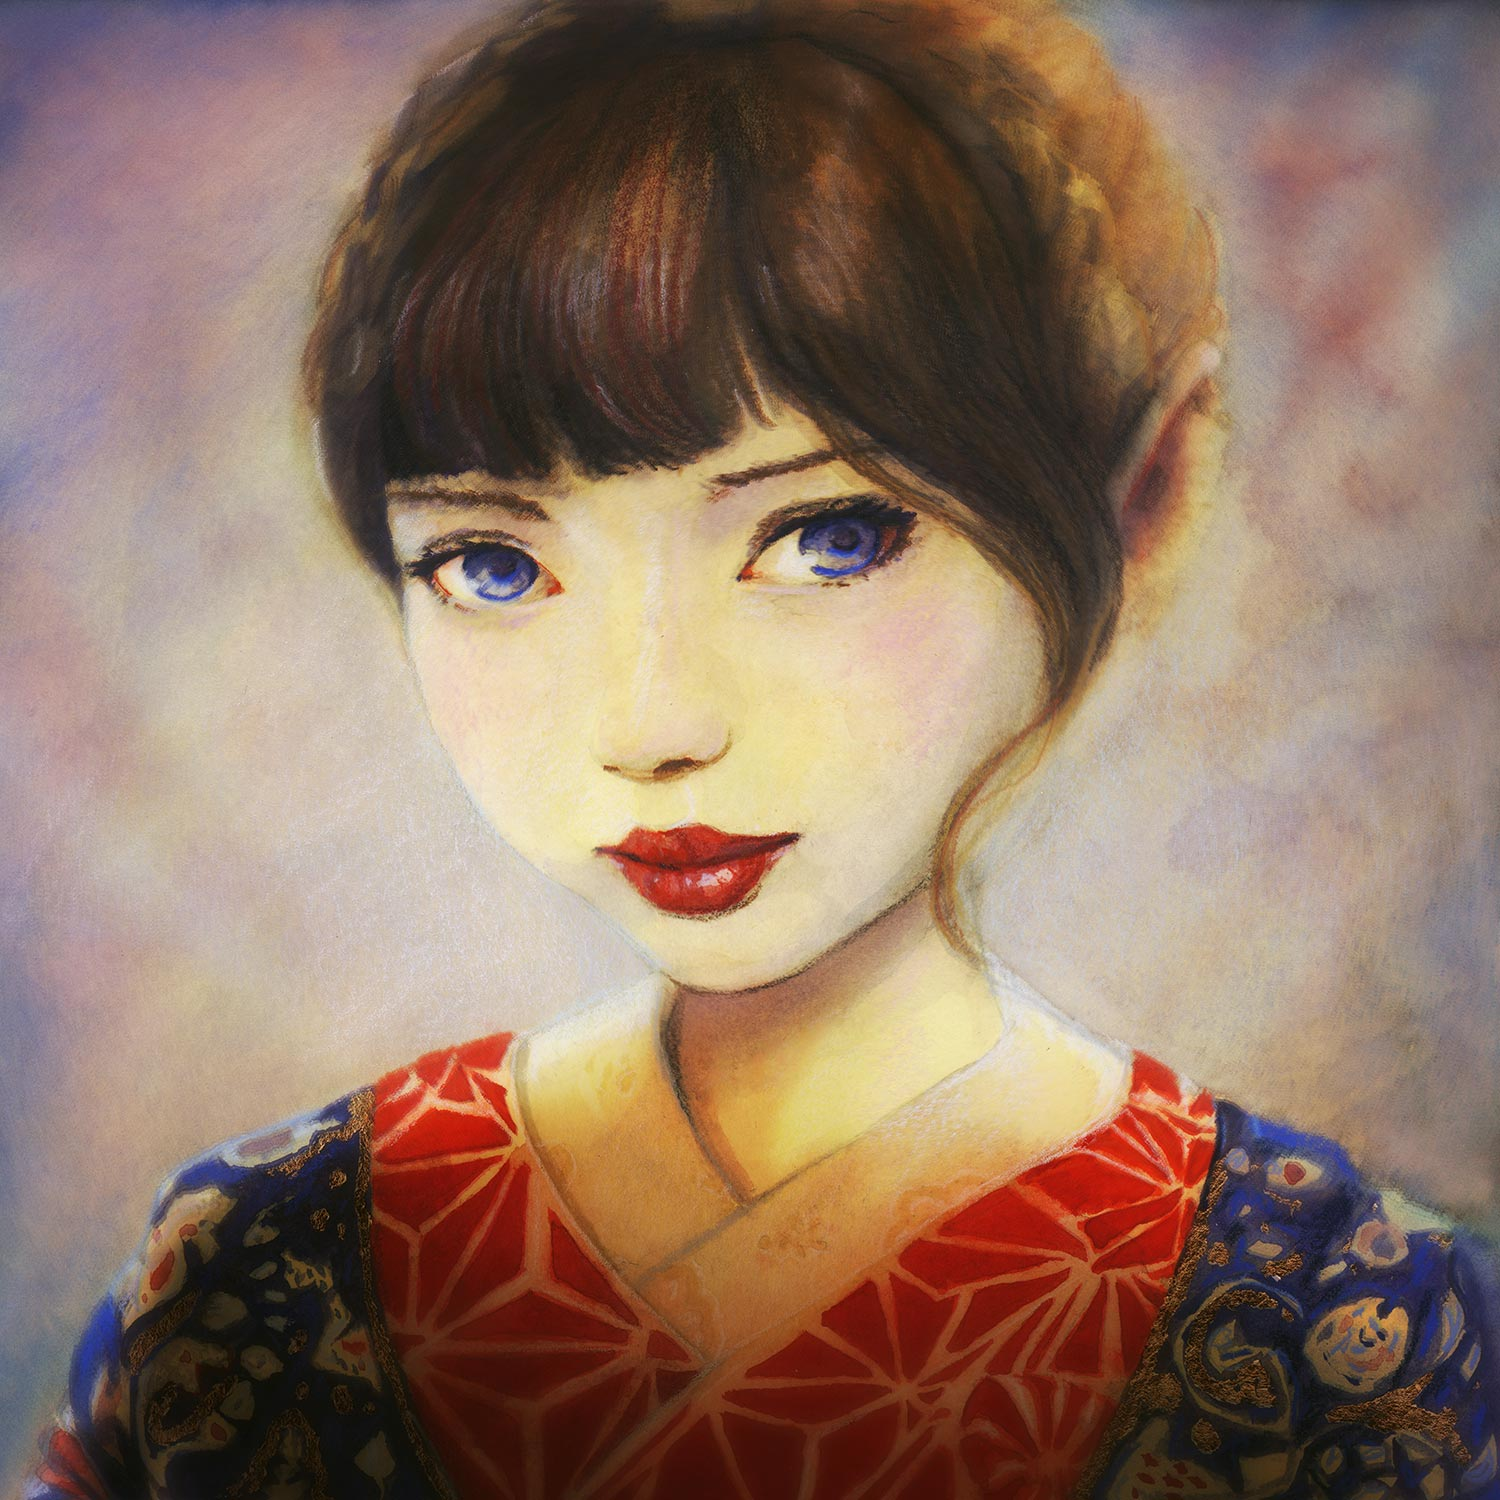 Artist Danny Roberts Portrait of a girl in a kimono inspired by Risa Nakamura